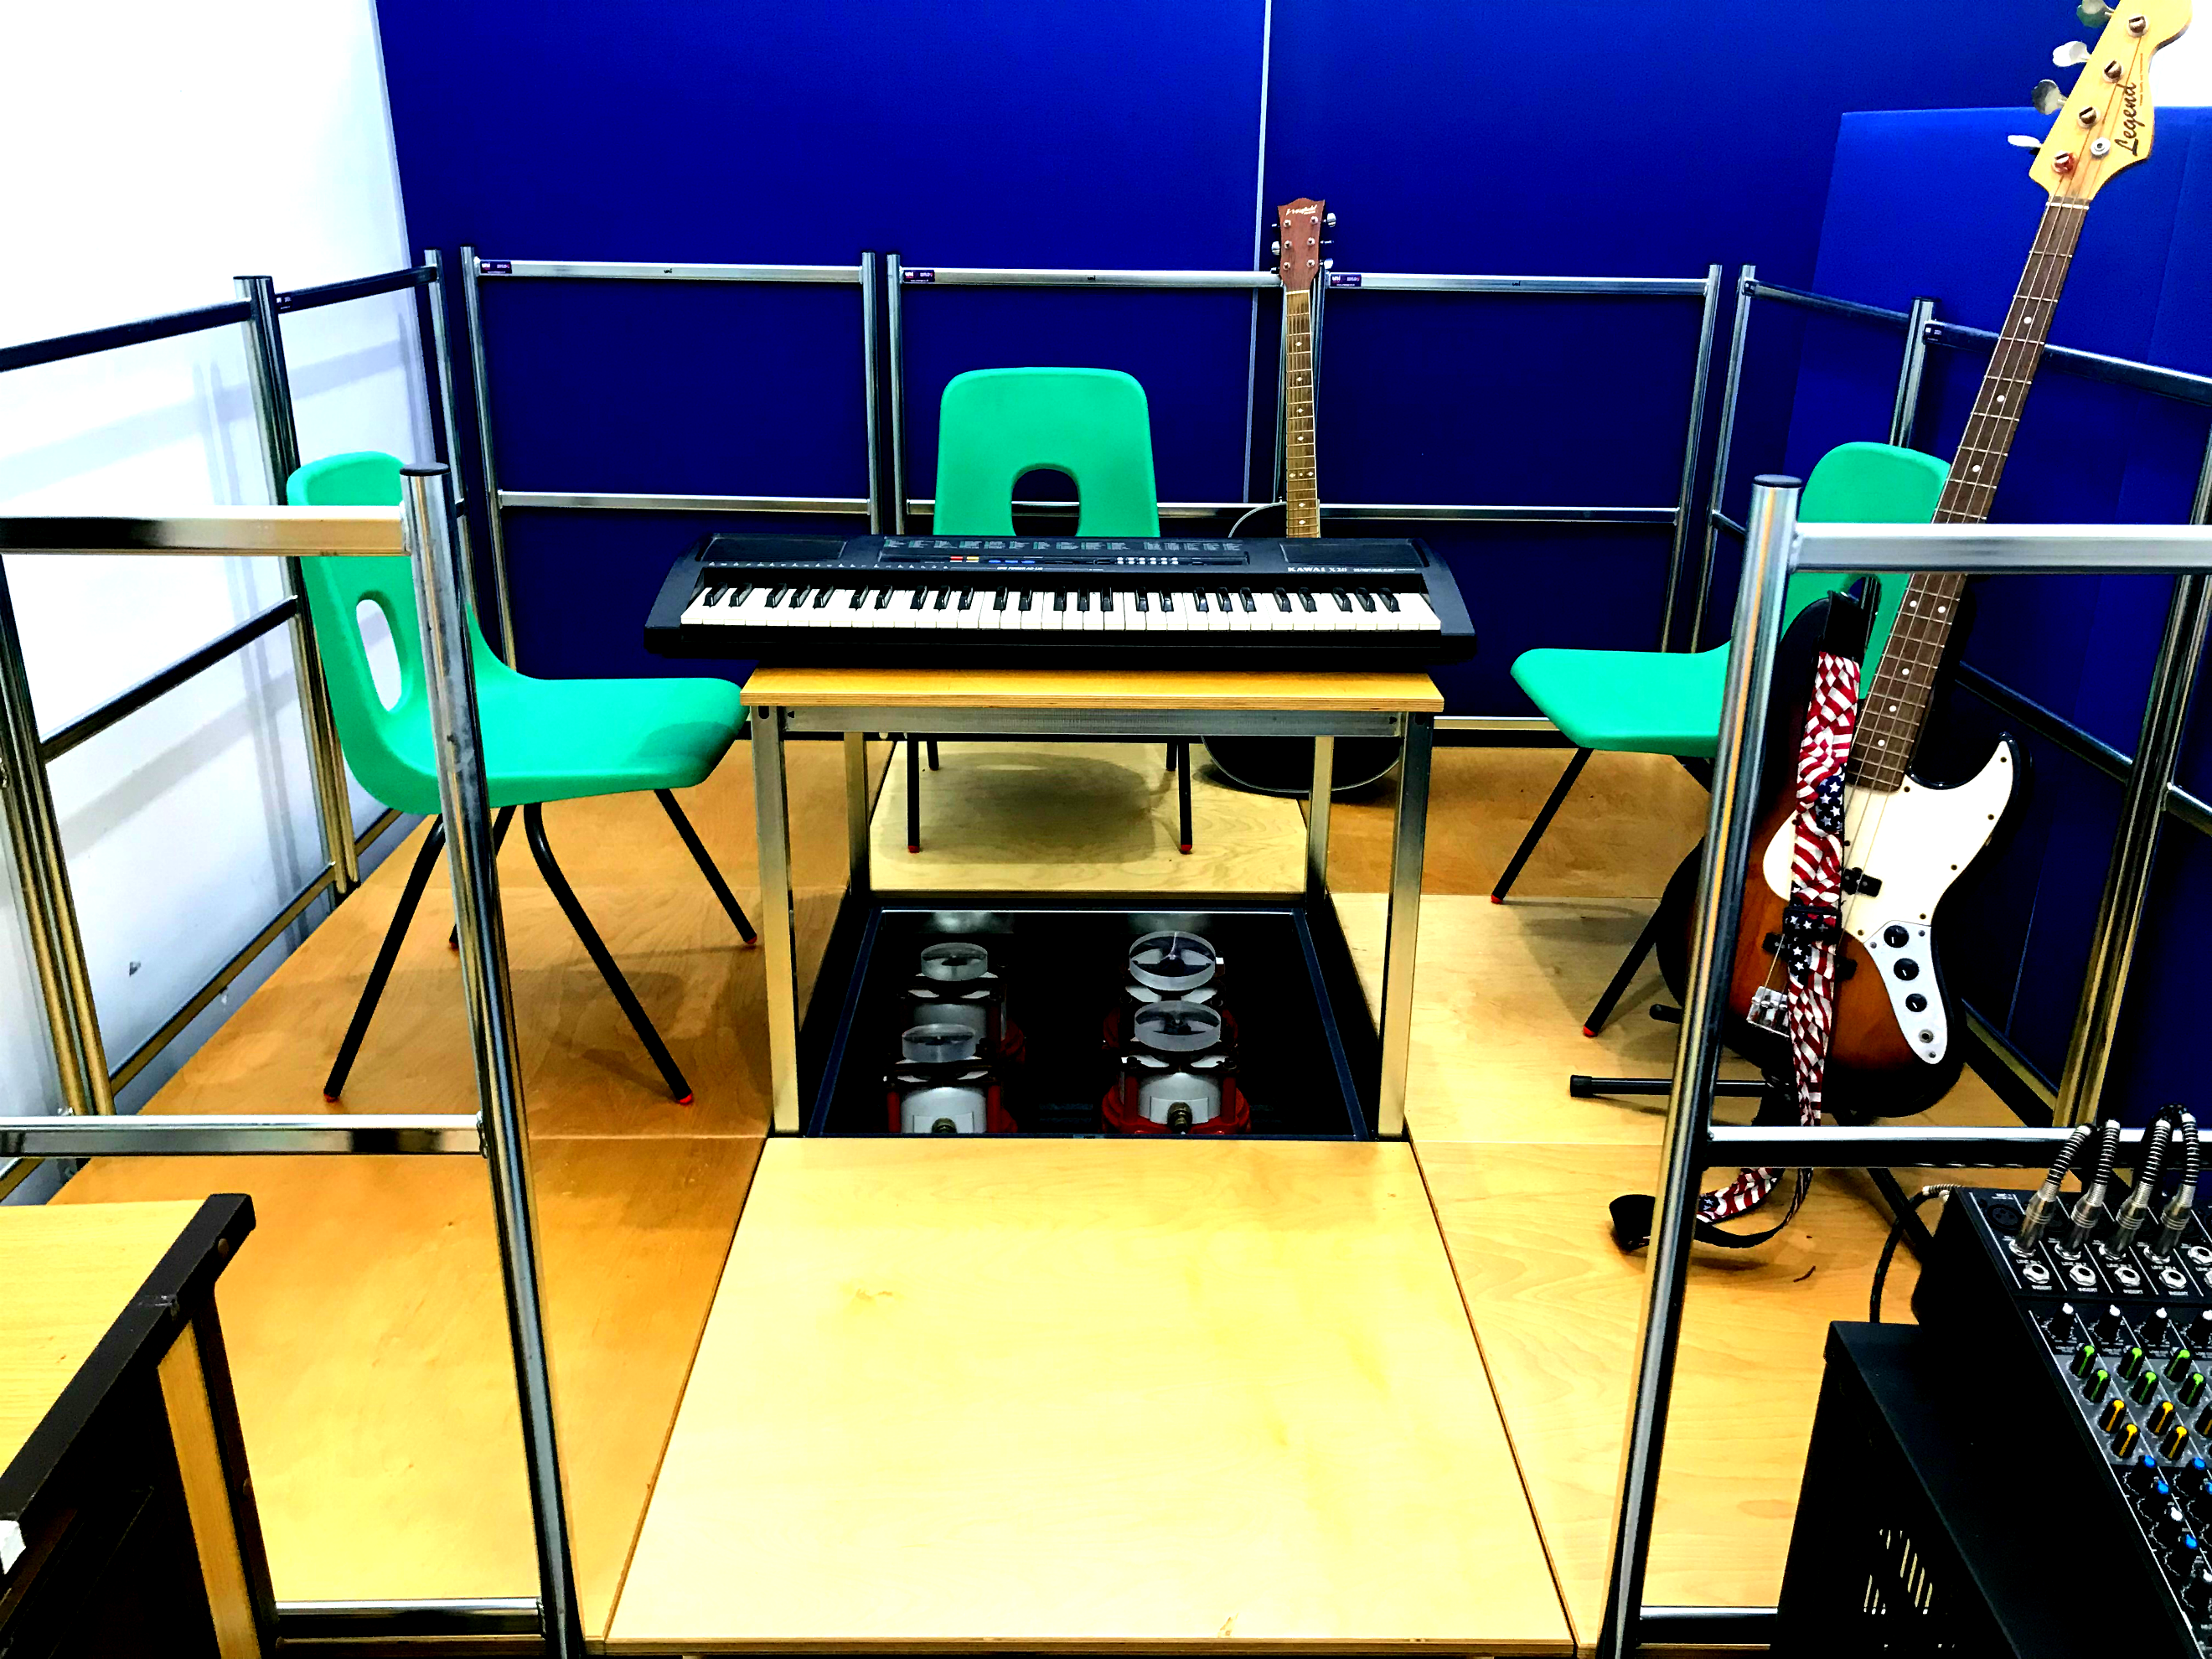 Raised wooden staging area surrounded by a silver coloured balustrade, containing three green chairs, a table with an electronic keyboard  on a central table, a black guitar and a brown and white bass guitar.  Below the central table are four vibrotactile shakers.